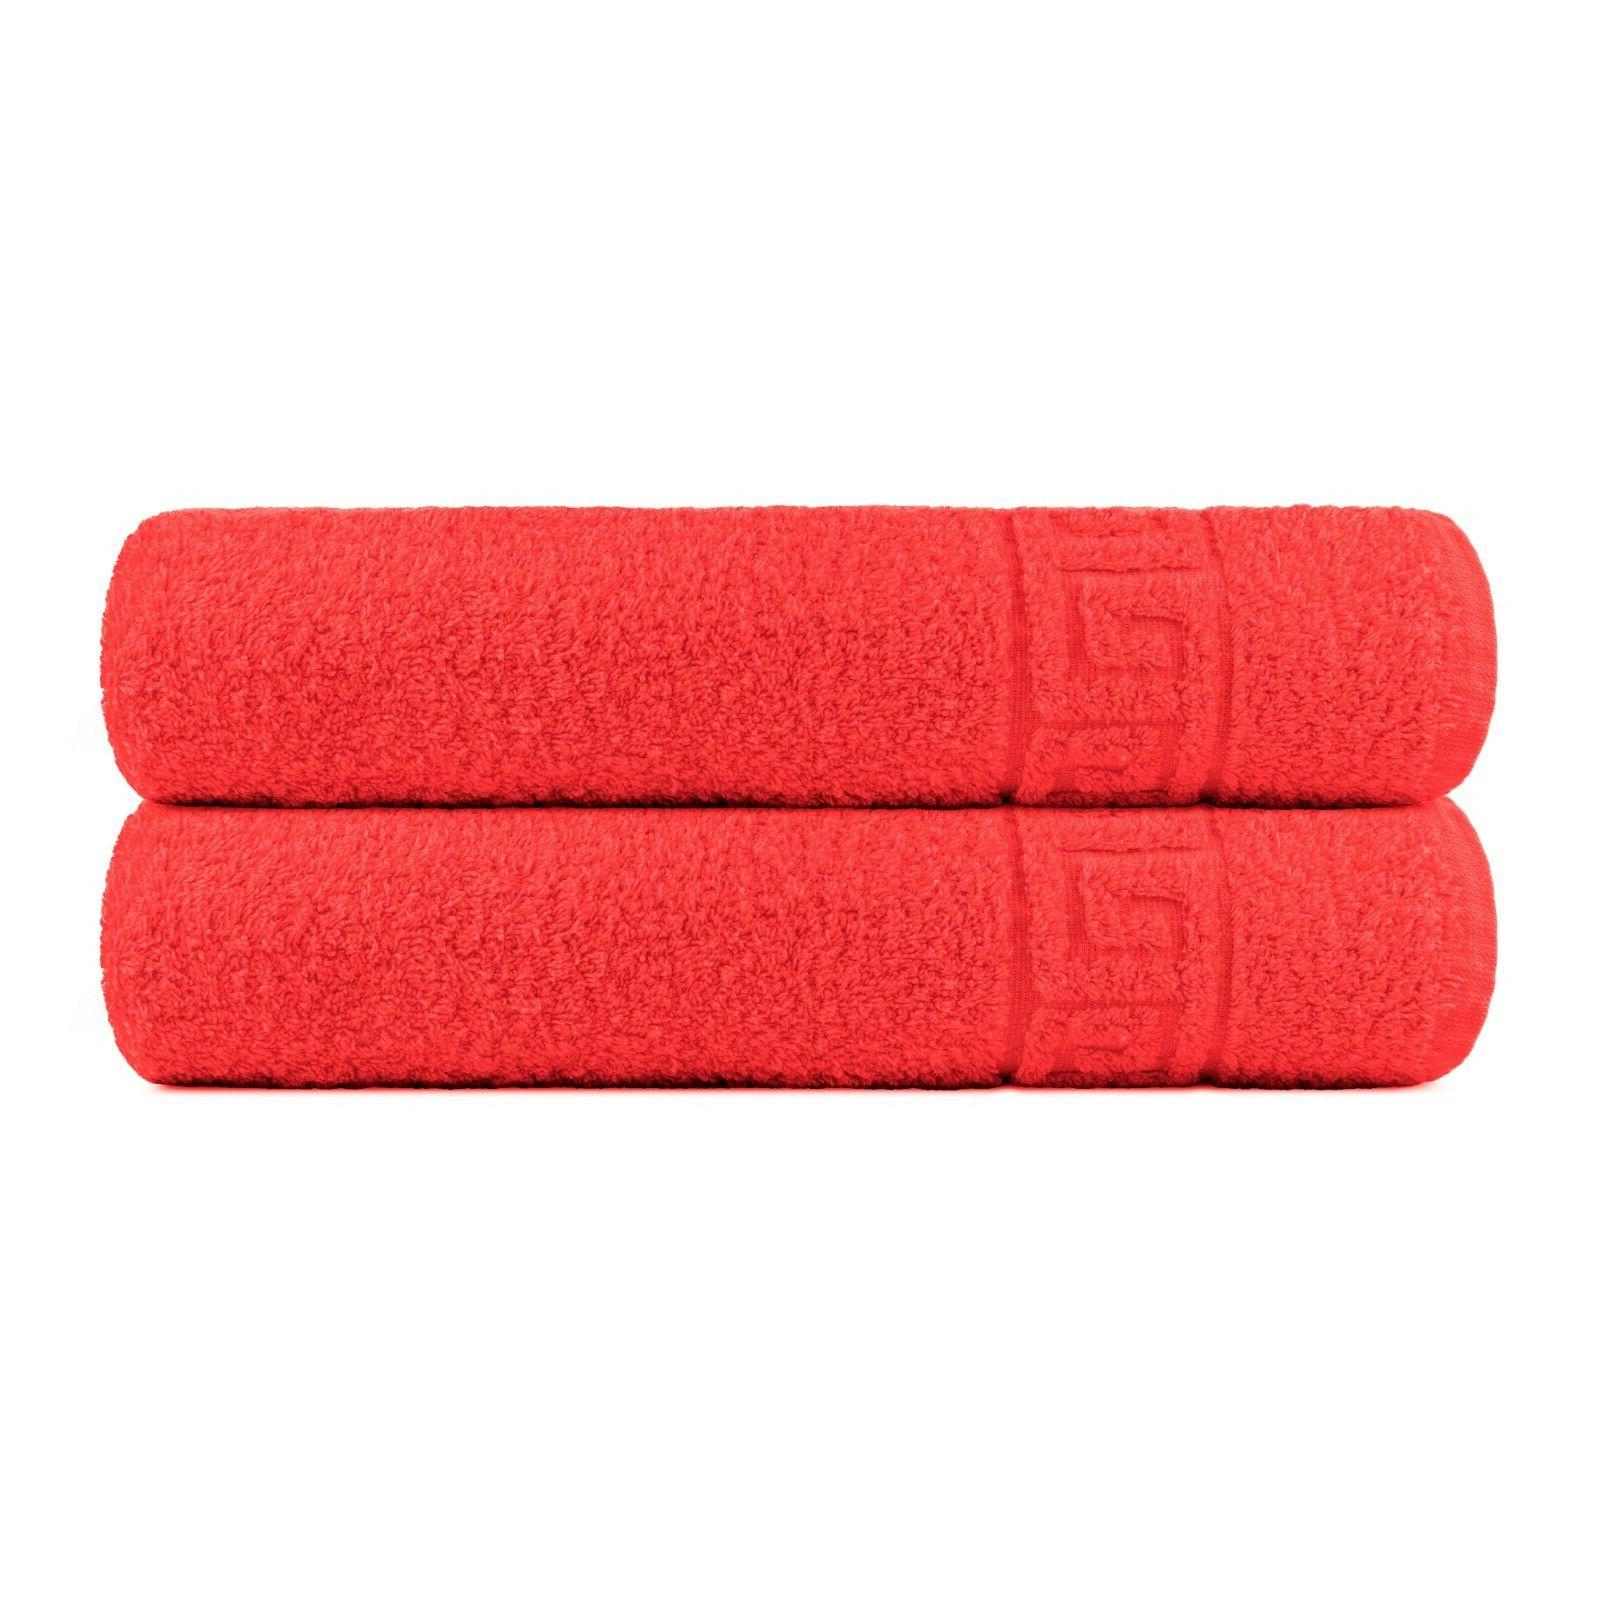 Towels 2 or 2 100% Cotton